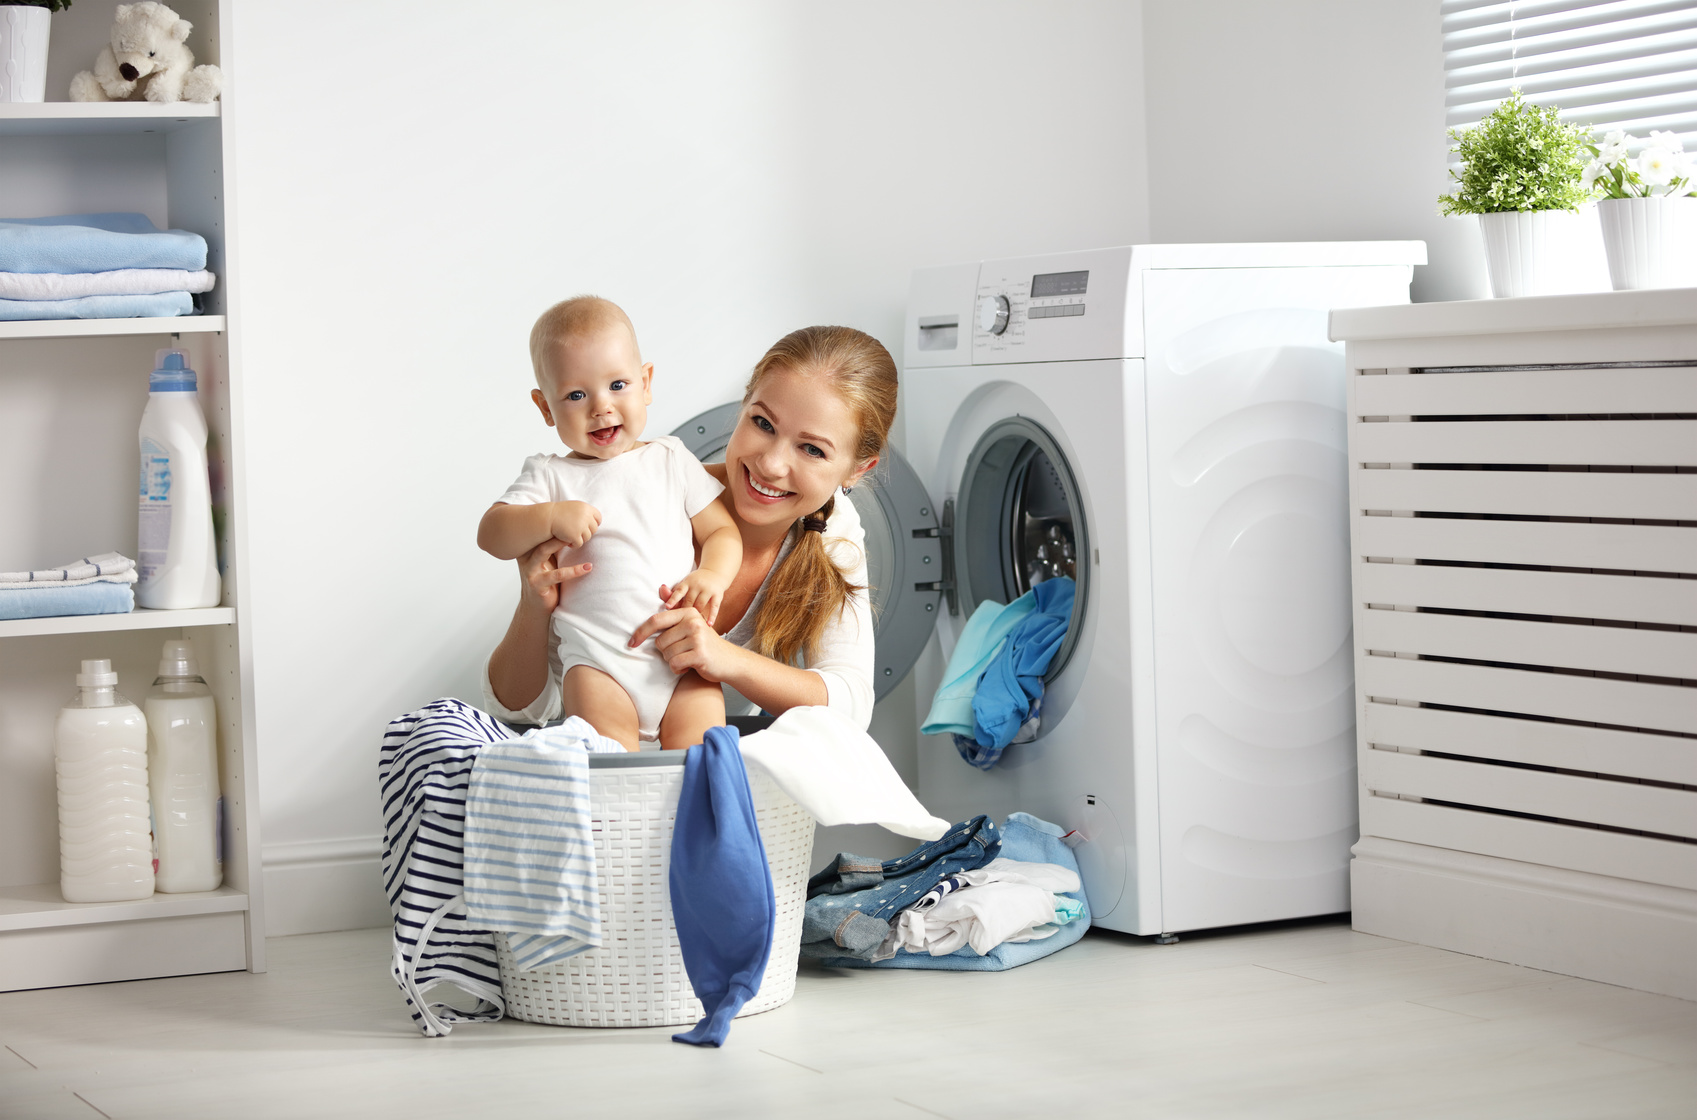 Küche Steckdosen Nachrüsten Mother A Housewife With A Baby Fold Clothes Into The